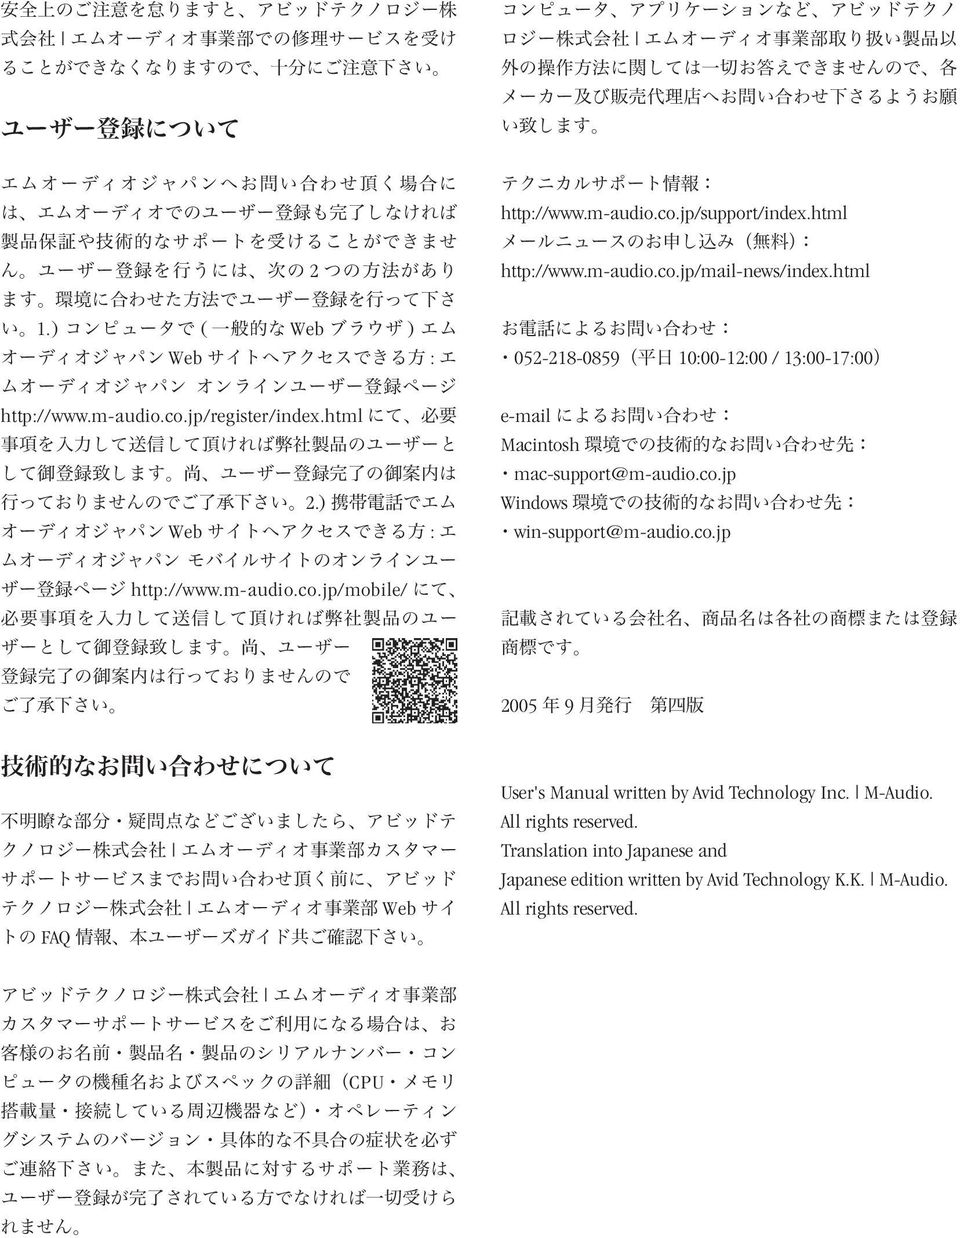 co.jp 2005 9 Web FAQ User's Manual written by Avid Technology Inc. M-Audio. All rights reserved.